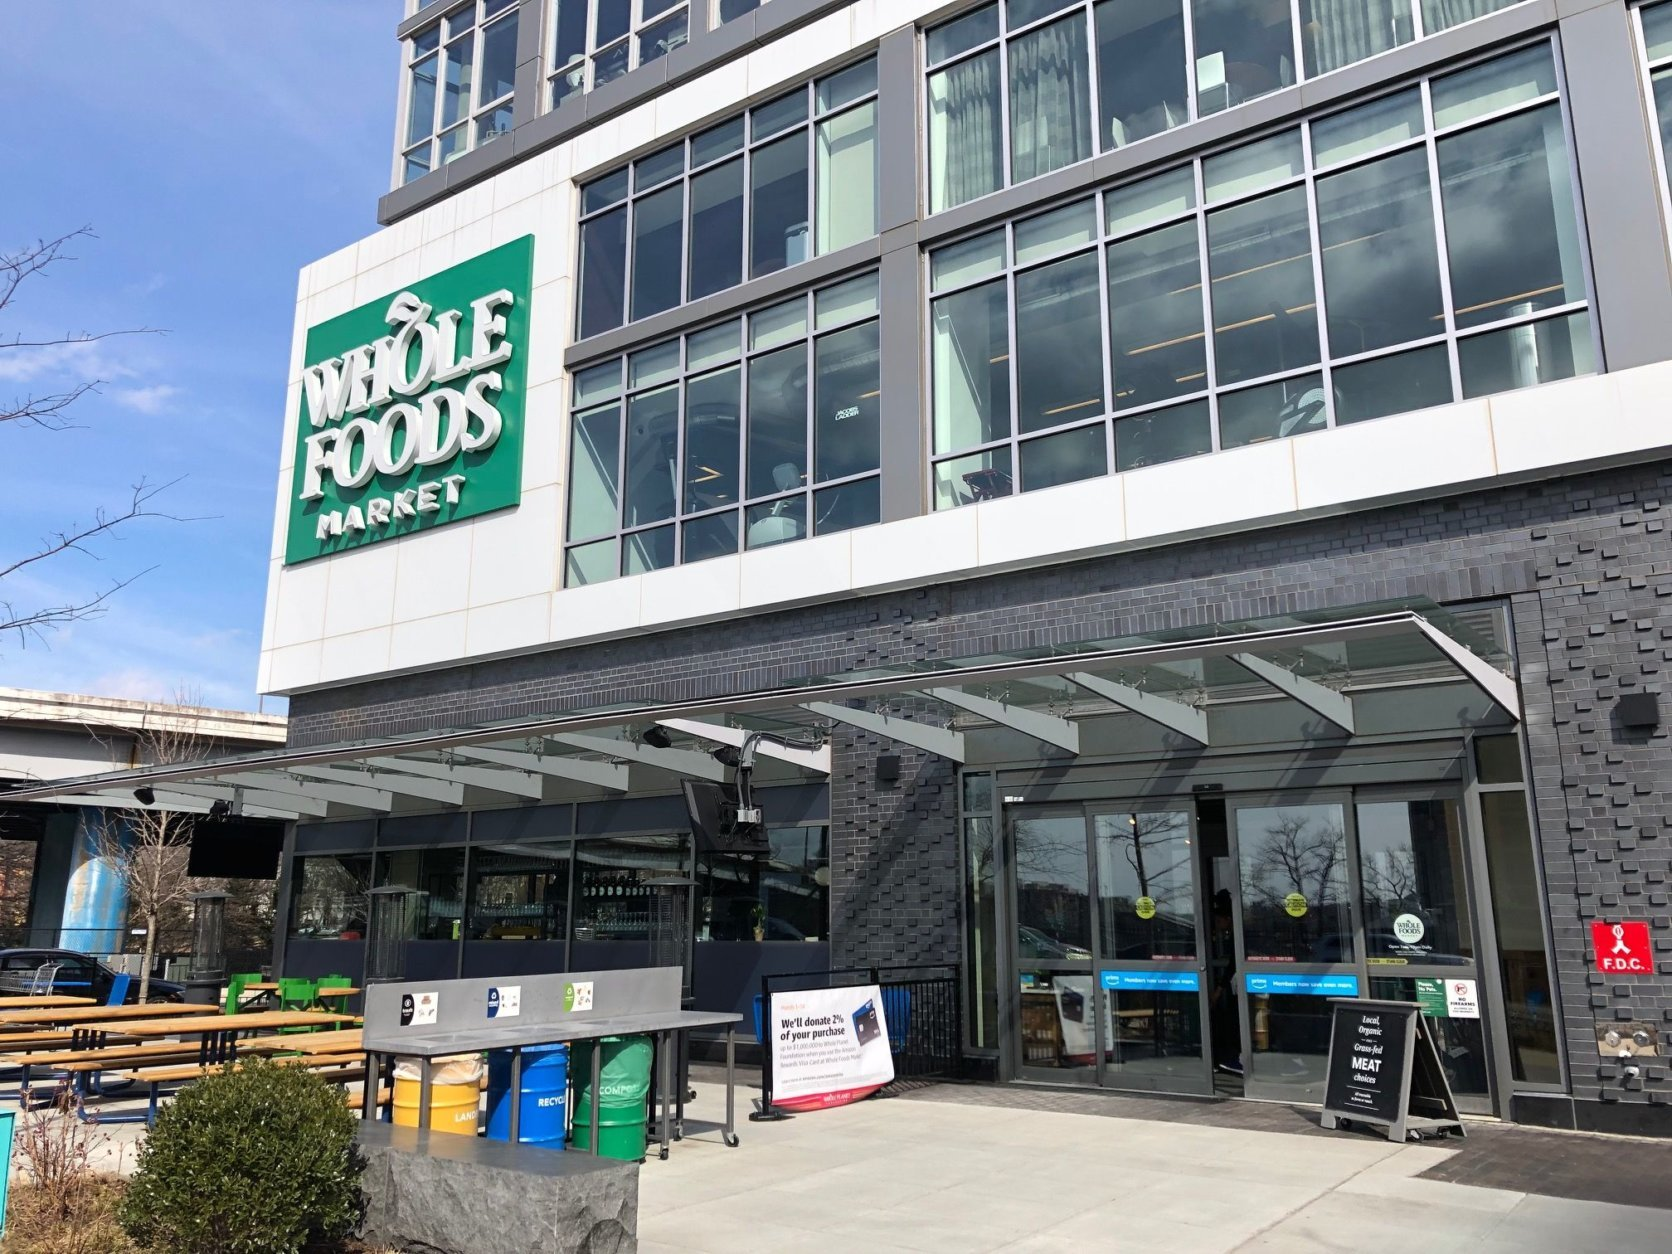 Capitol Riverfront residents will also have a new Whole Foods Market for their grocery needs. (Courtesy Capitol Riverfront BID)